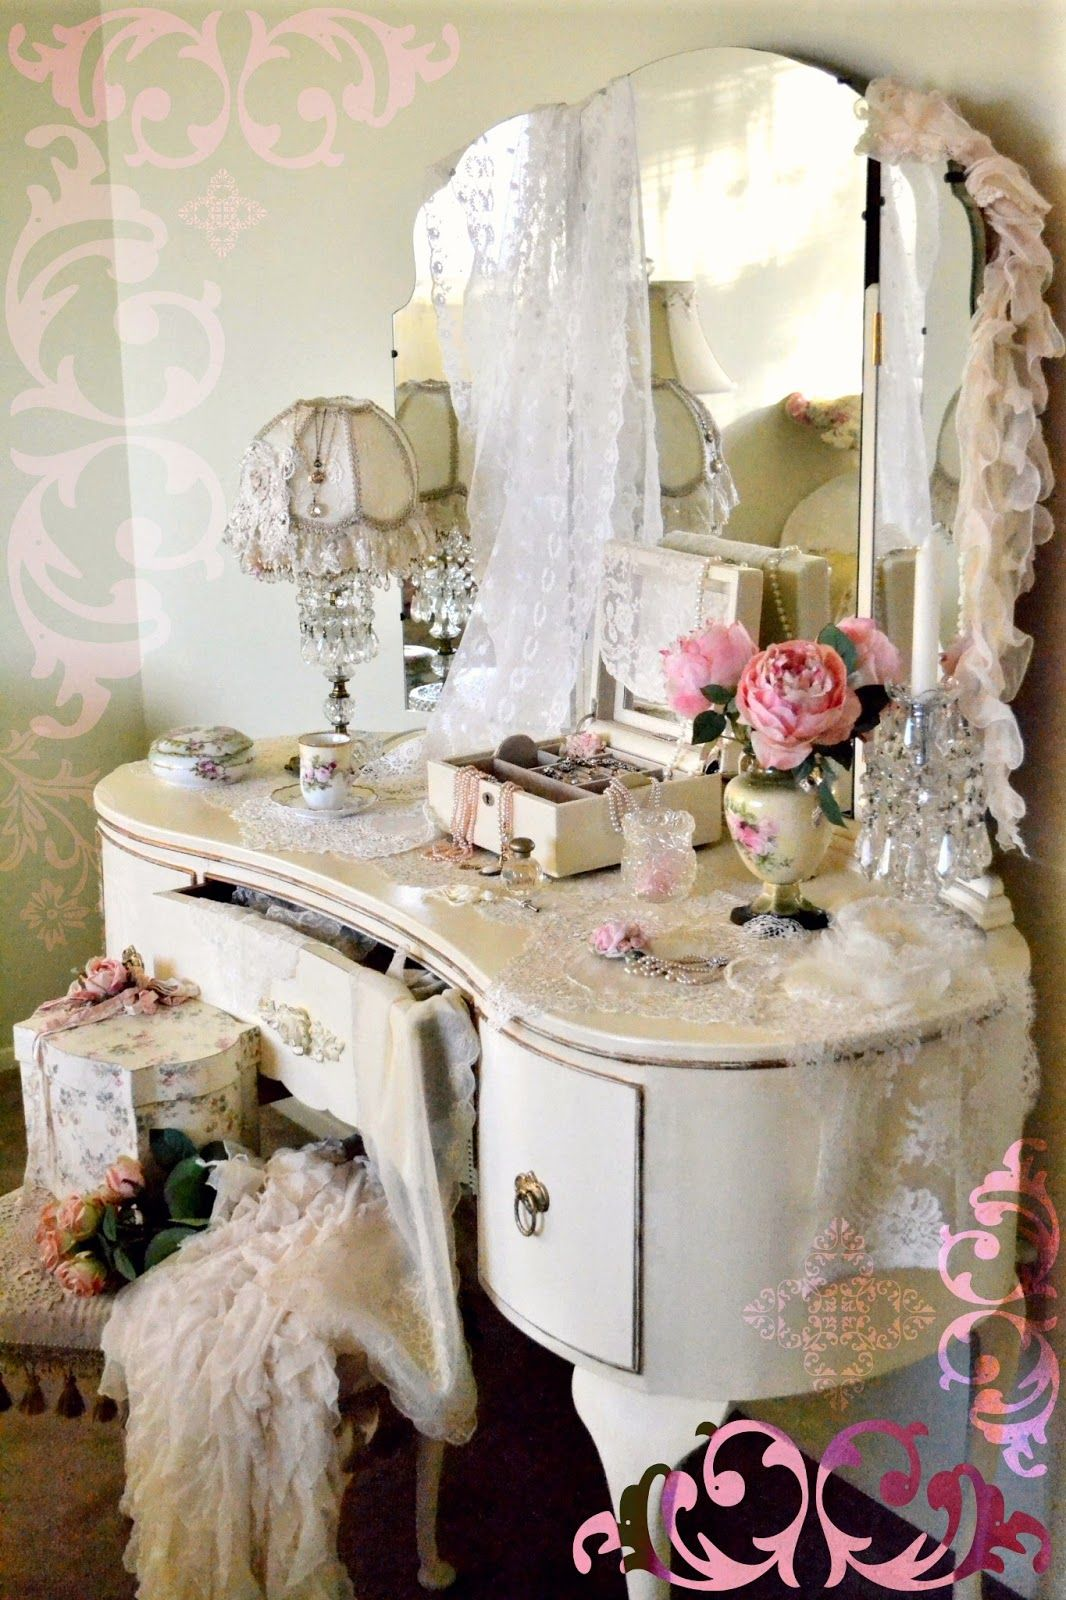 Muebles Shabby Chic Jennelise January 2013 Shappy Chic Pinterest